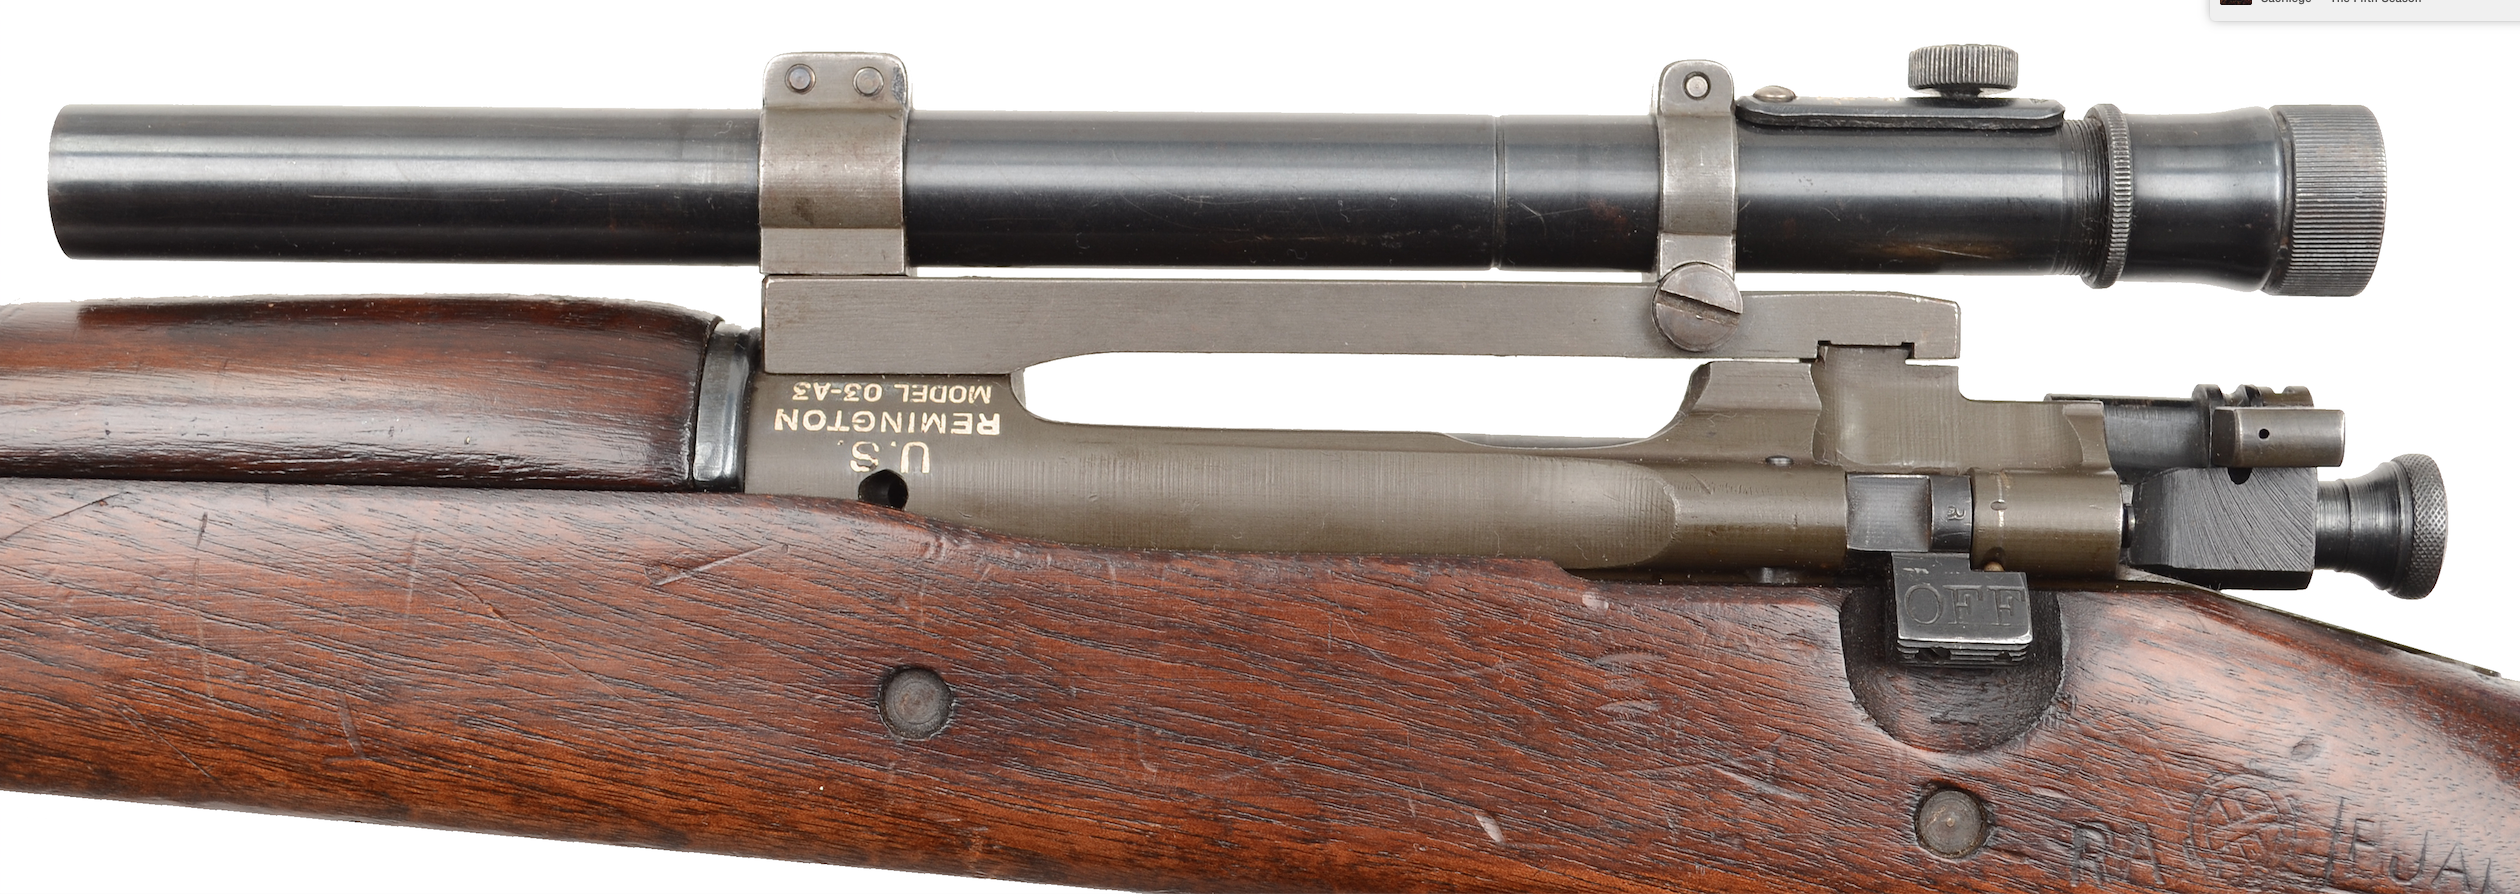 The M73 Telescopic Sight was adjustable for windage and elevation with cylindrical click-stop knobs.